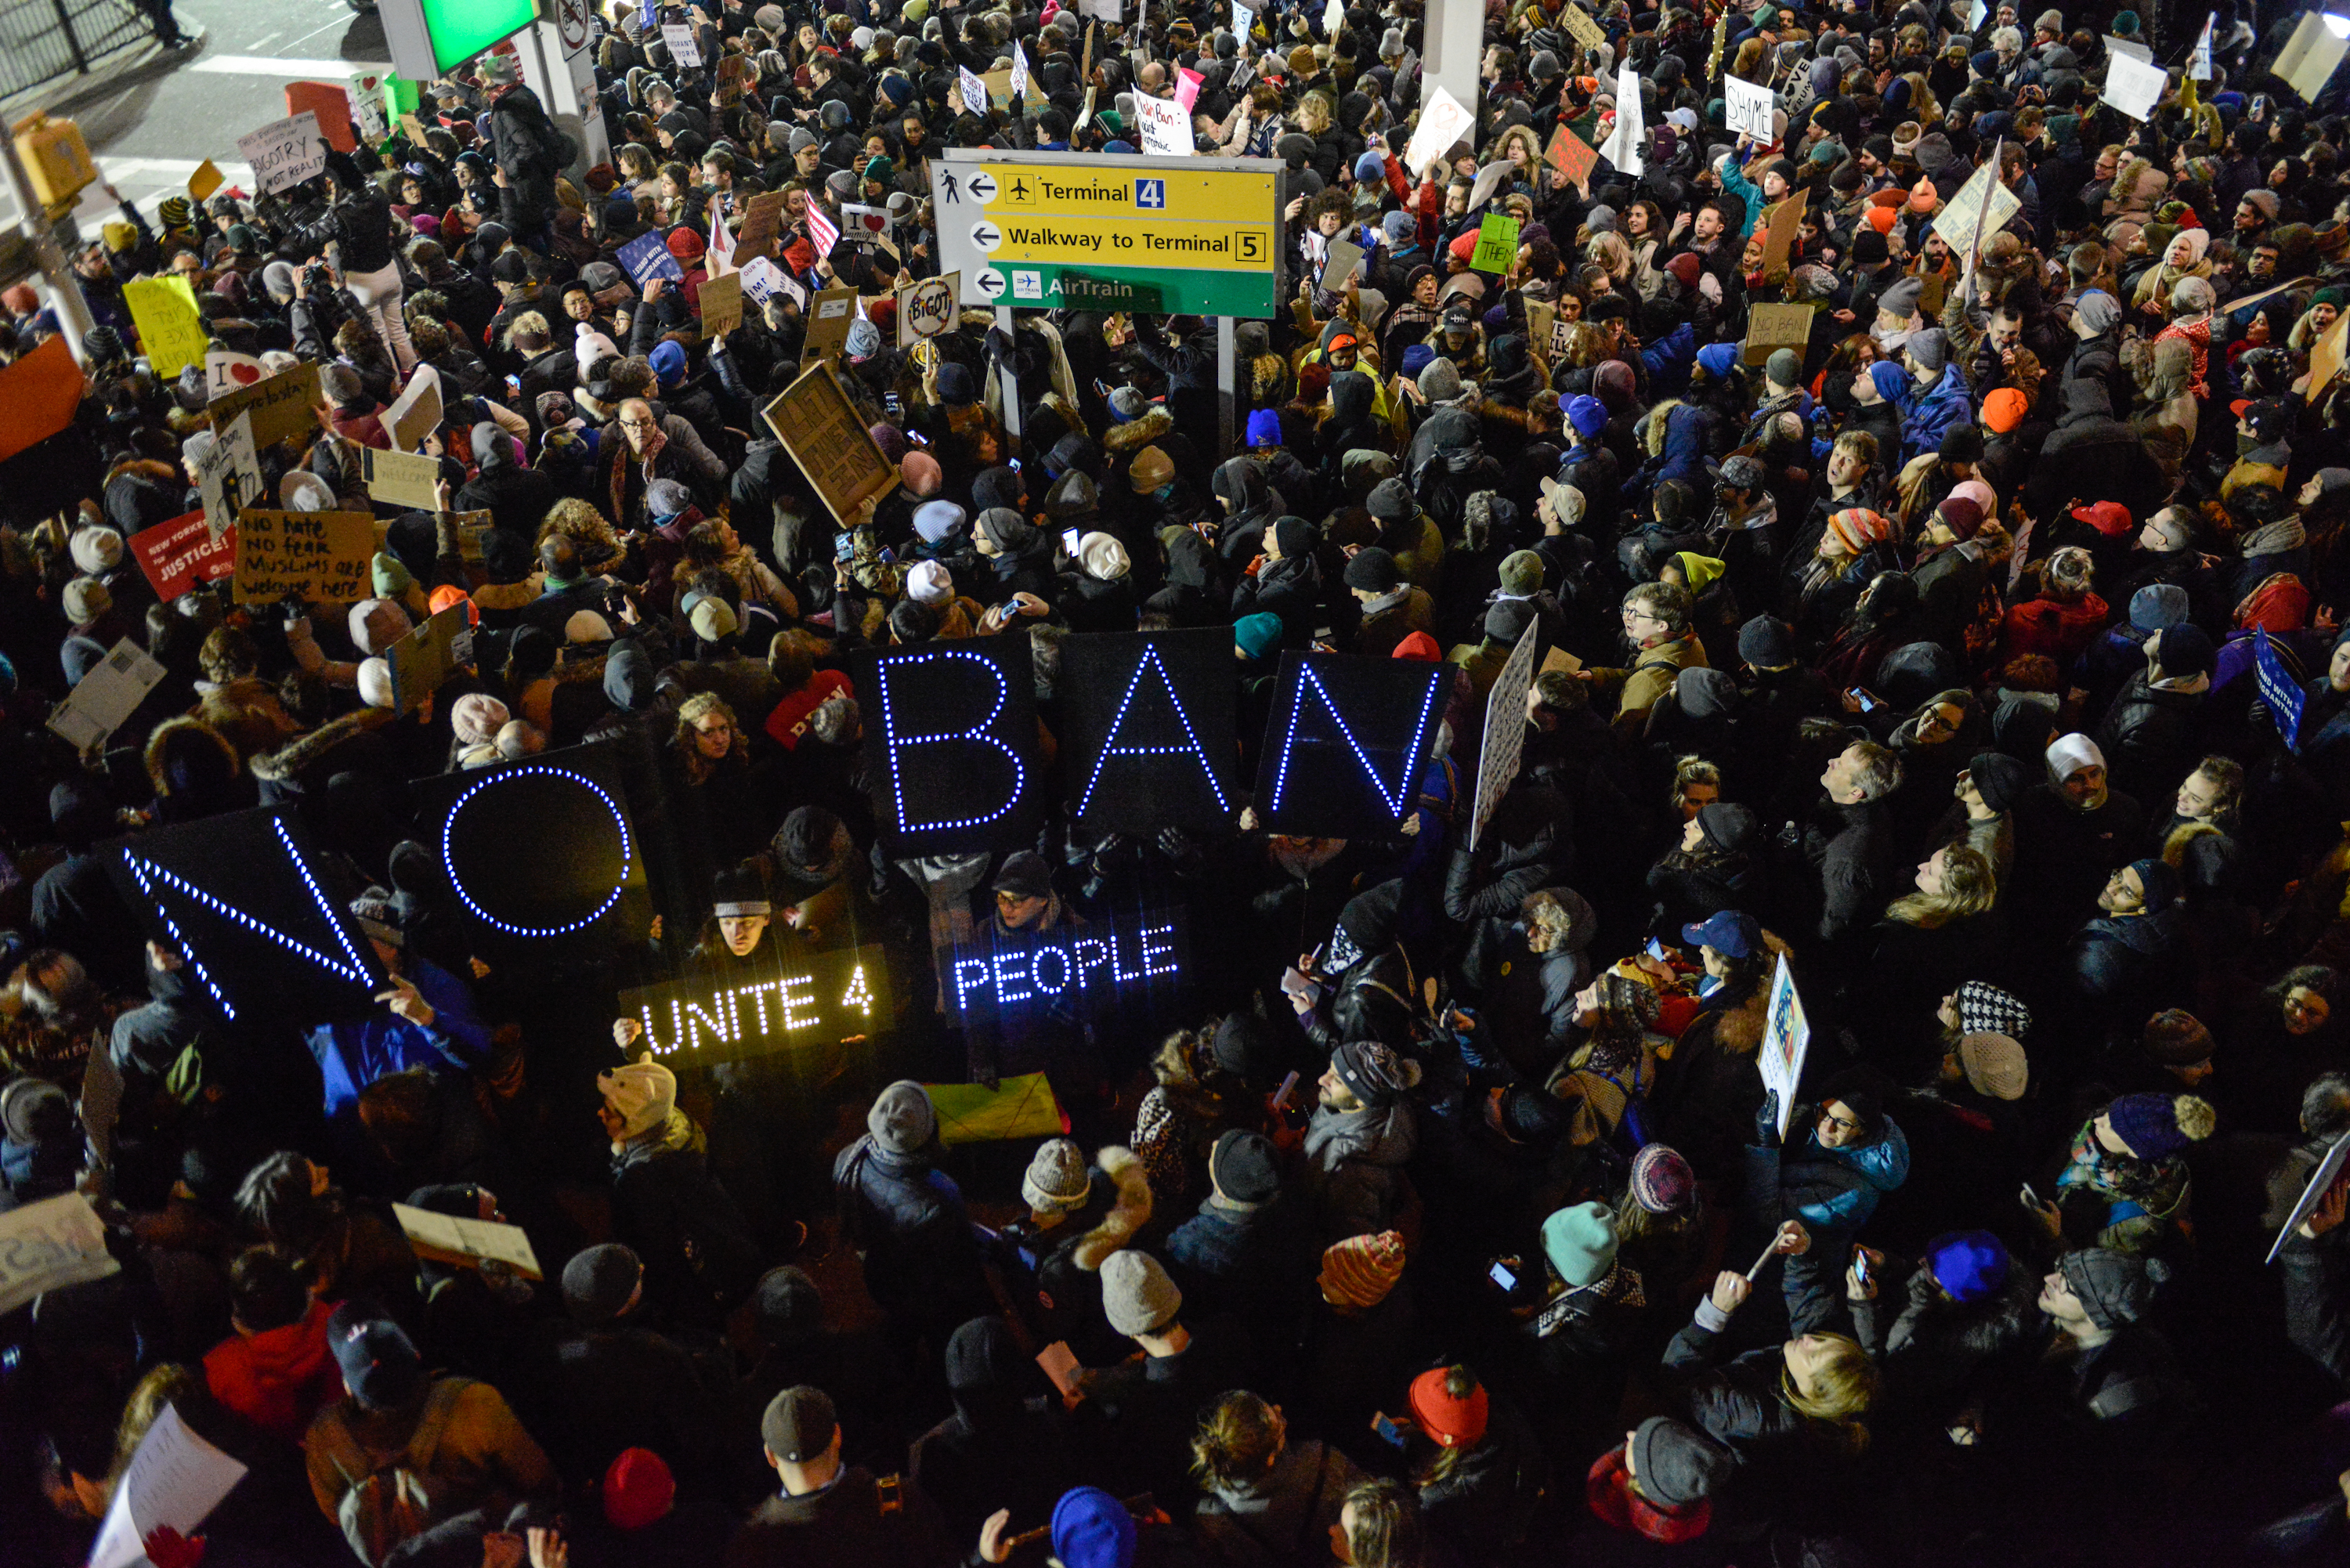 Protestors rally during a demonstration against the so-called  Muslim  ban at John F. Kennedy International Airport on Jan. 28, 2017 in New York City.